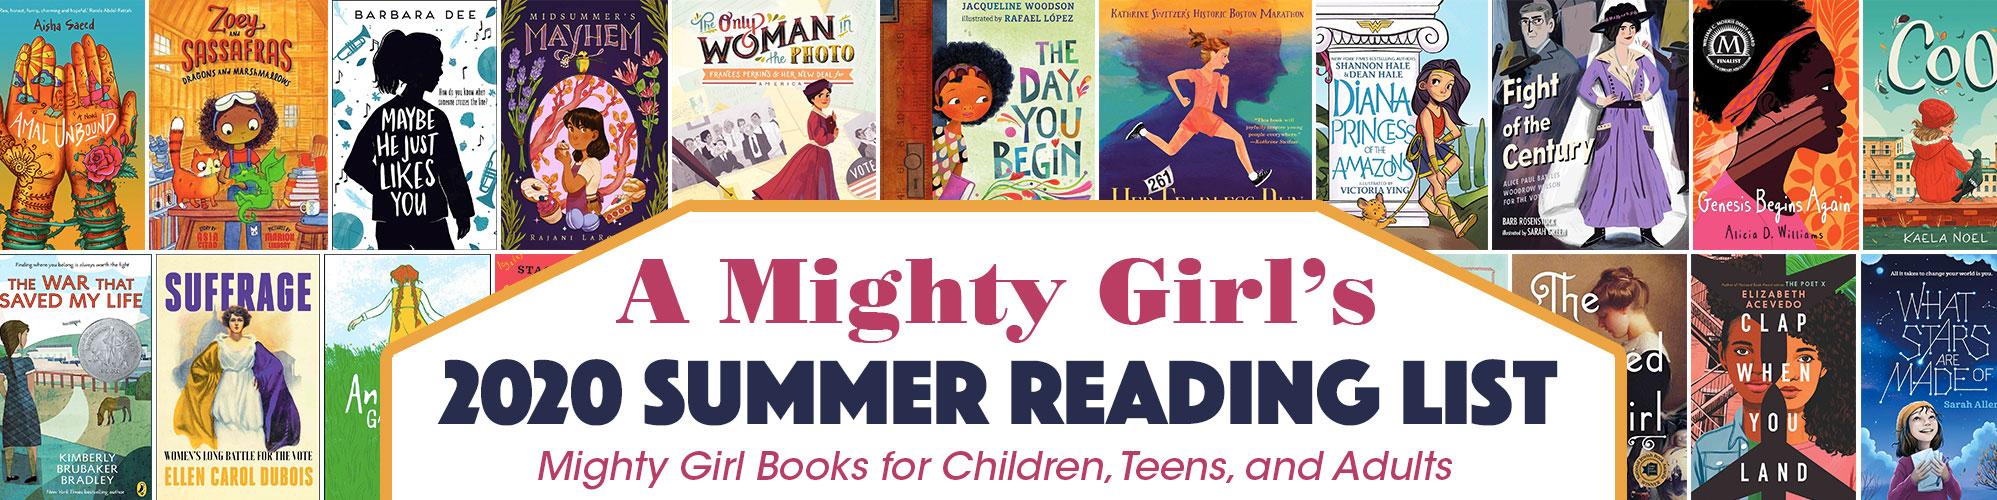 A Mighty Girl's 2020 Summer Reading List